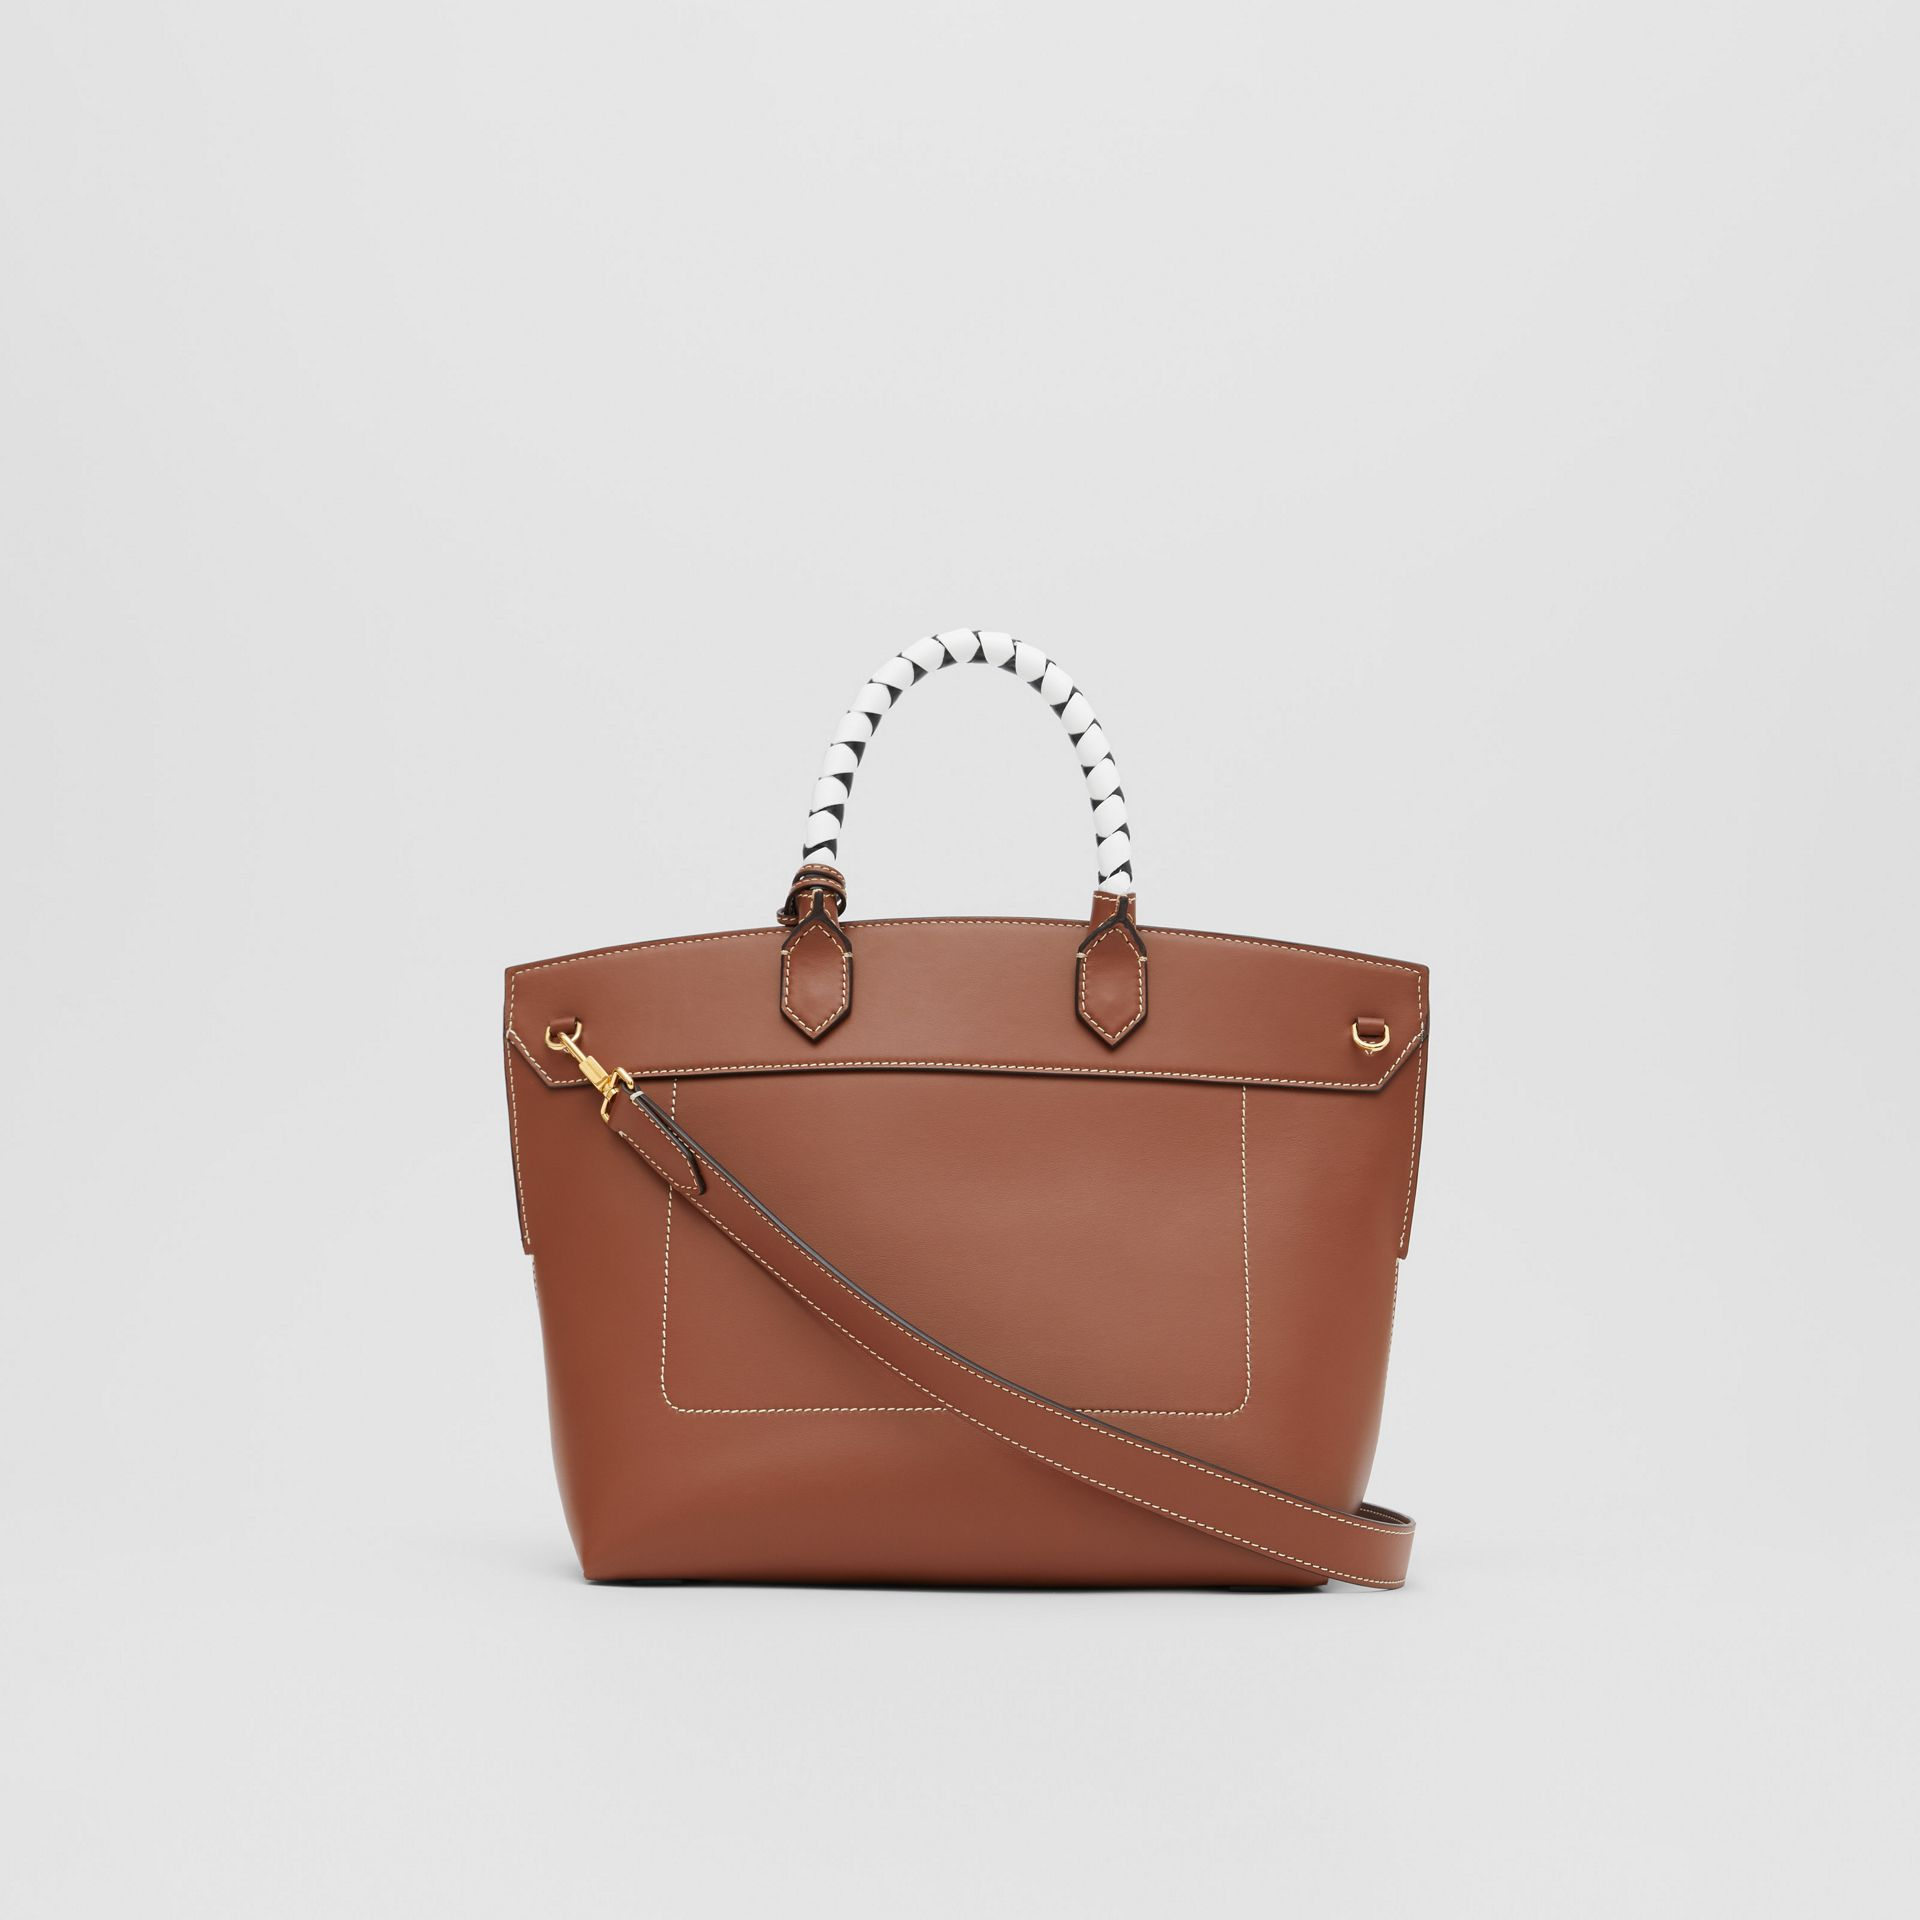 Small Leather Society Top Handle Bag in Tan - Women | Burberry - gallery image 7